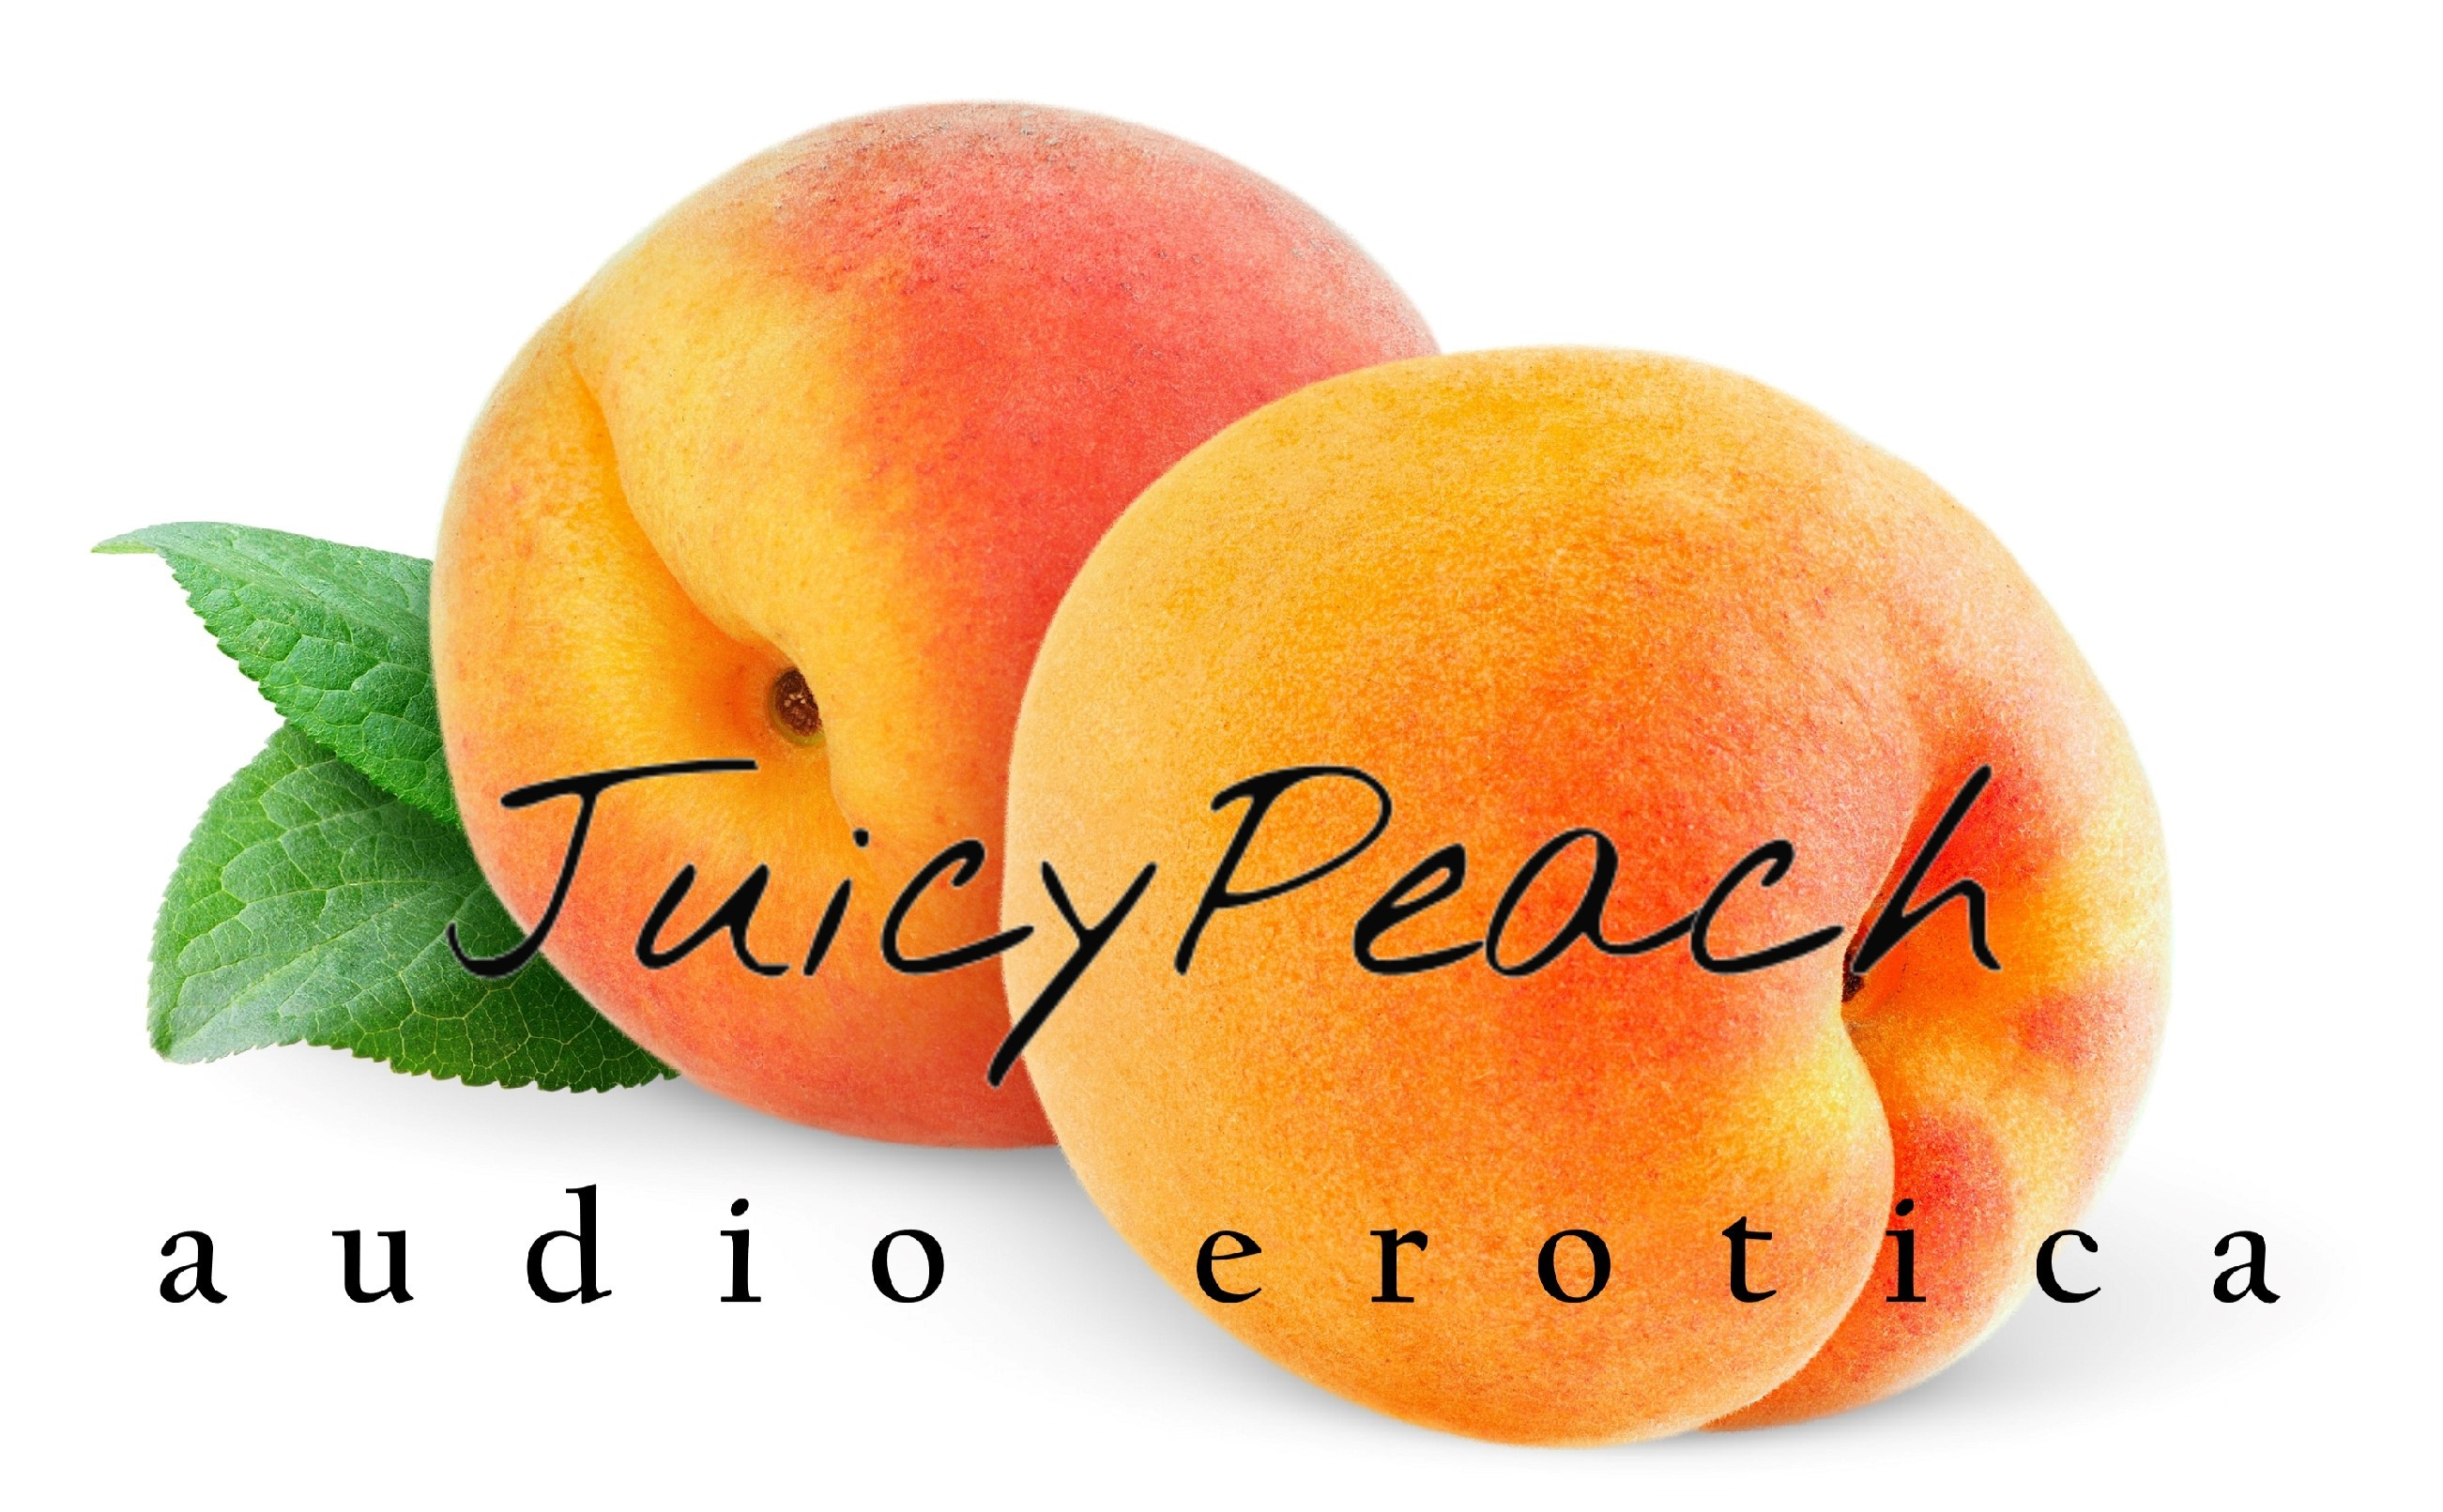 JuicyPeach Audio Erotica Podcast